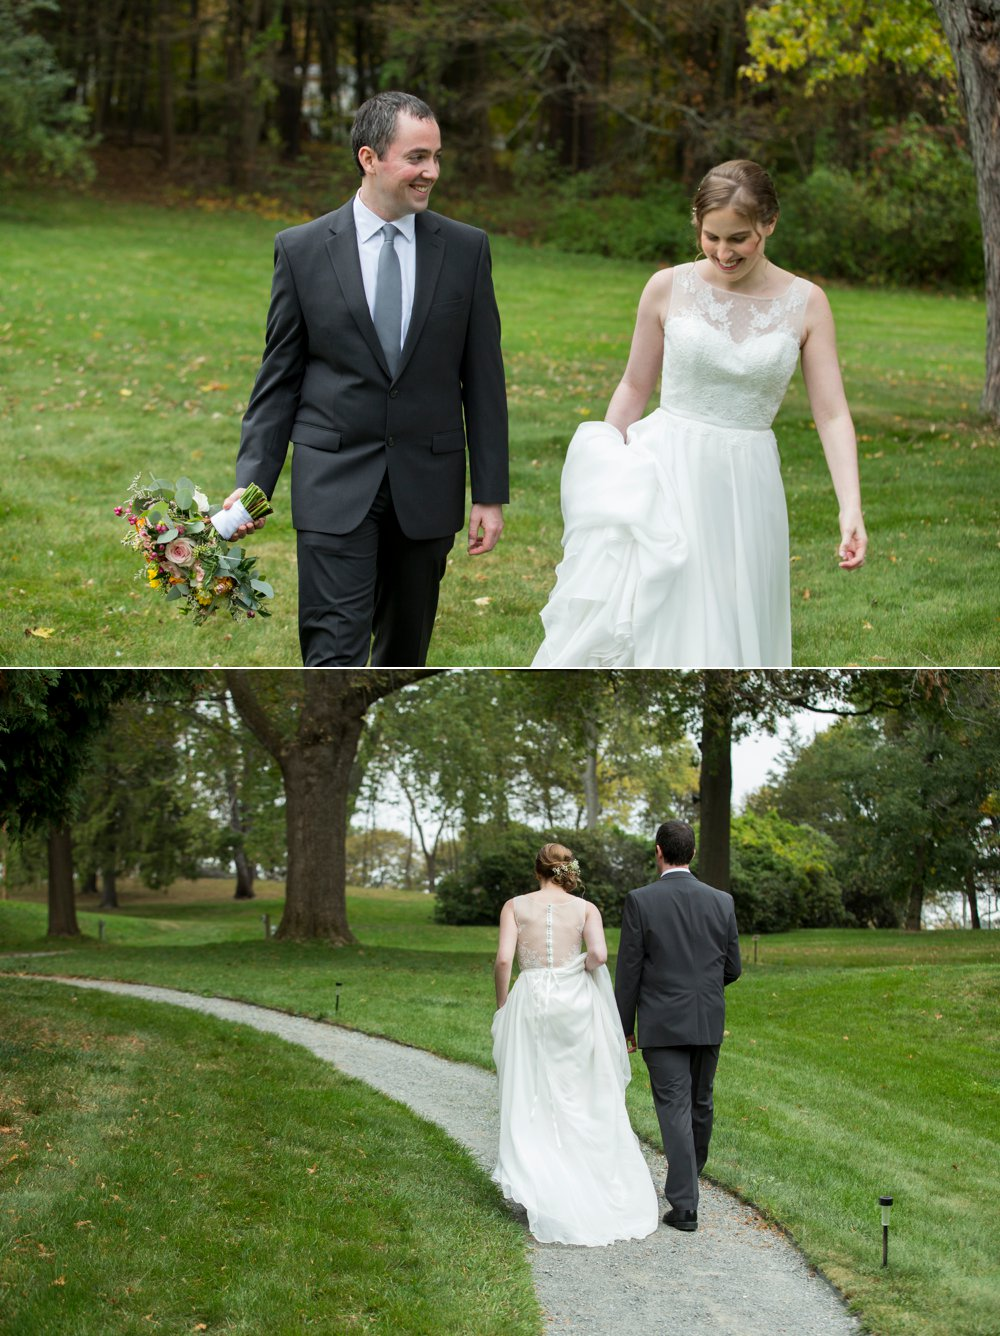 SomerbyJonesPhotography_HellenicCenterWedding_TheHellenicCenter_0014.jpg